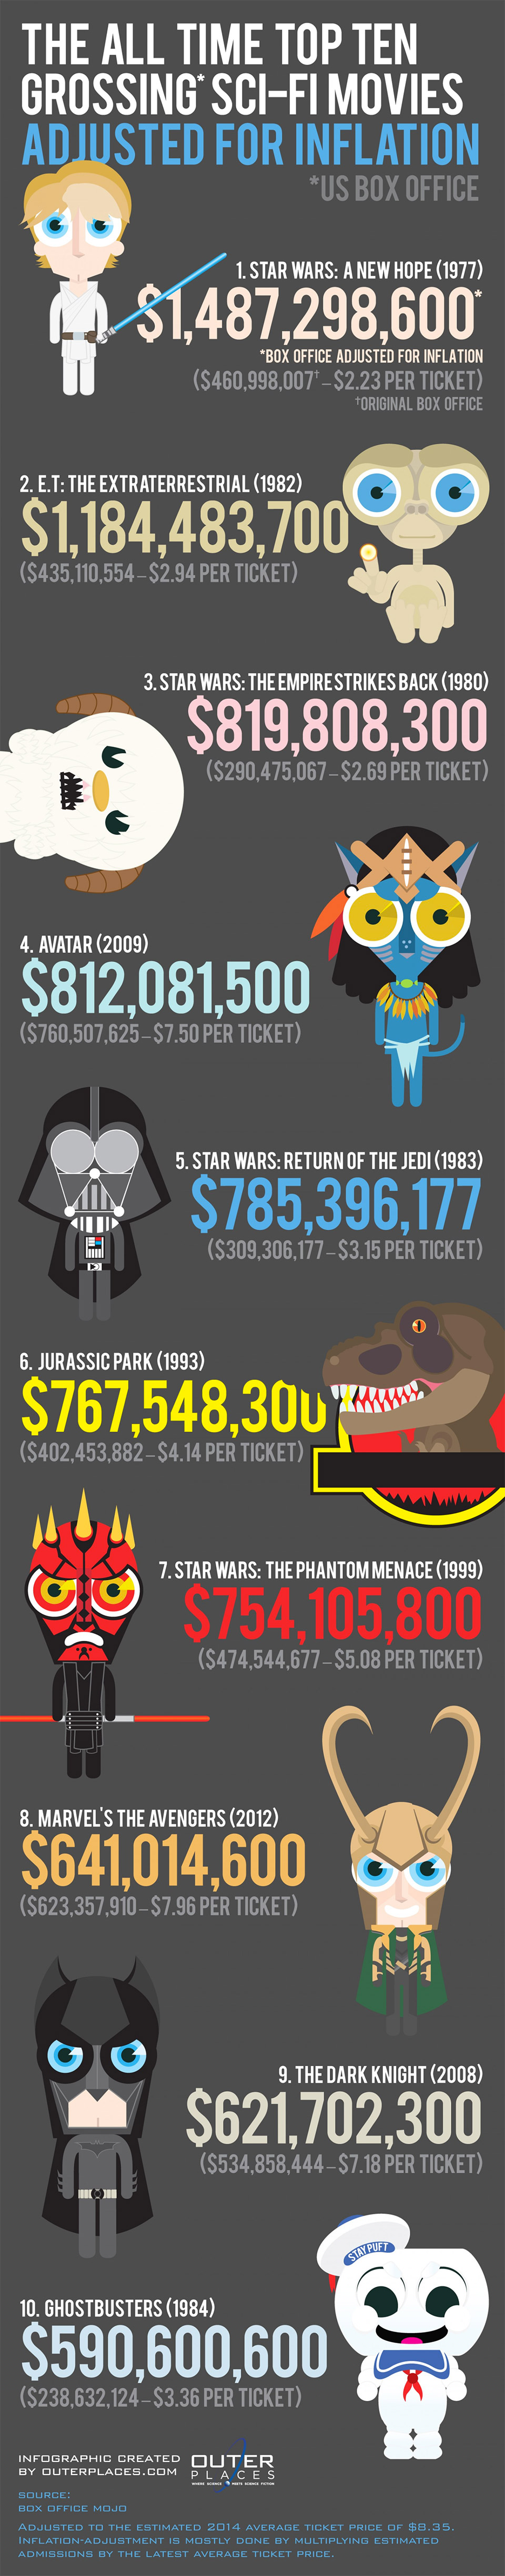 Top Ten Grossing Sci-Fi Films of All Time